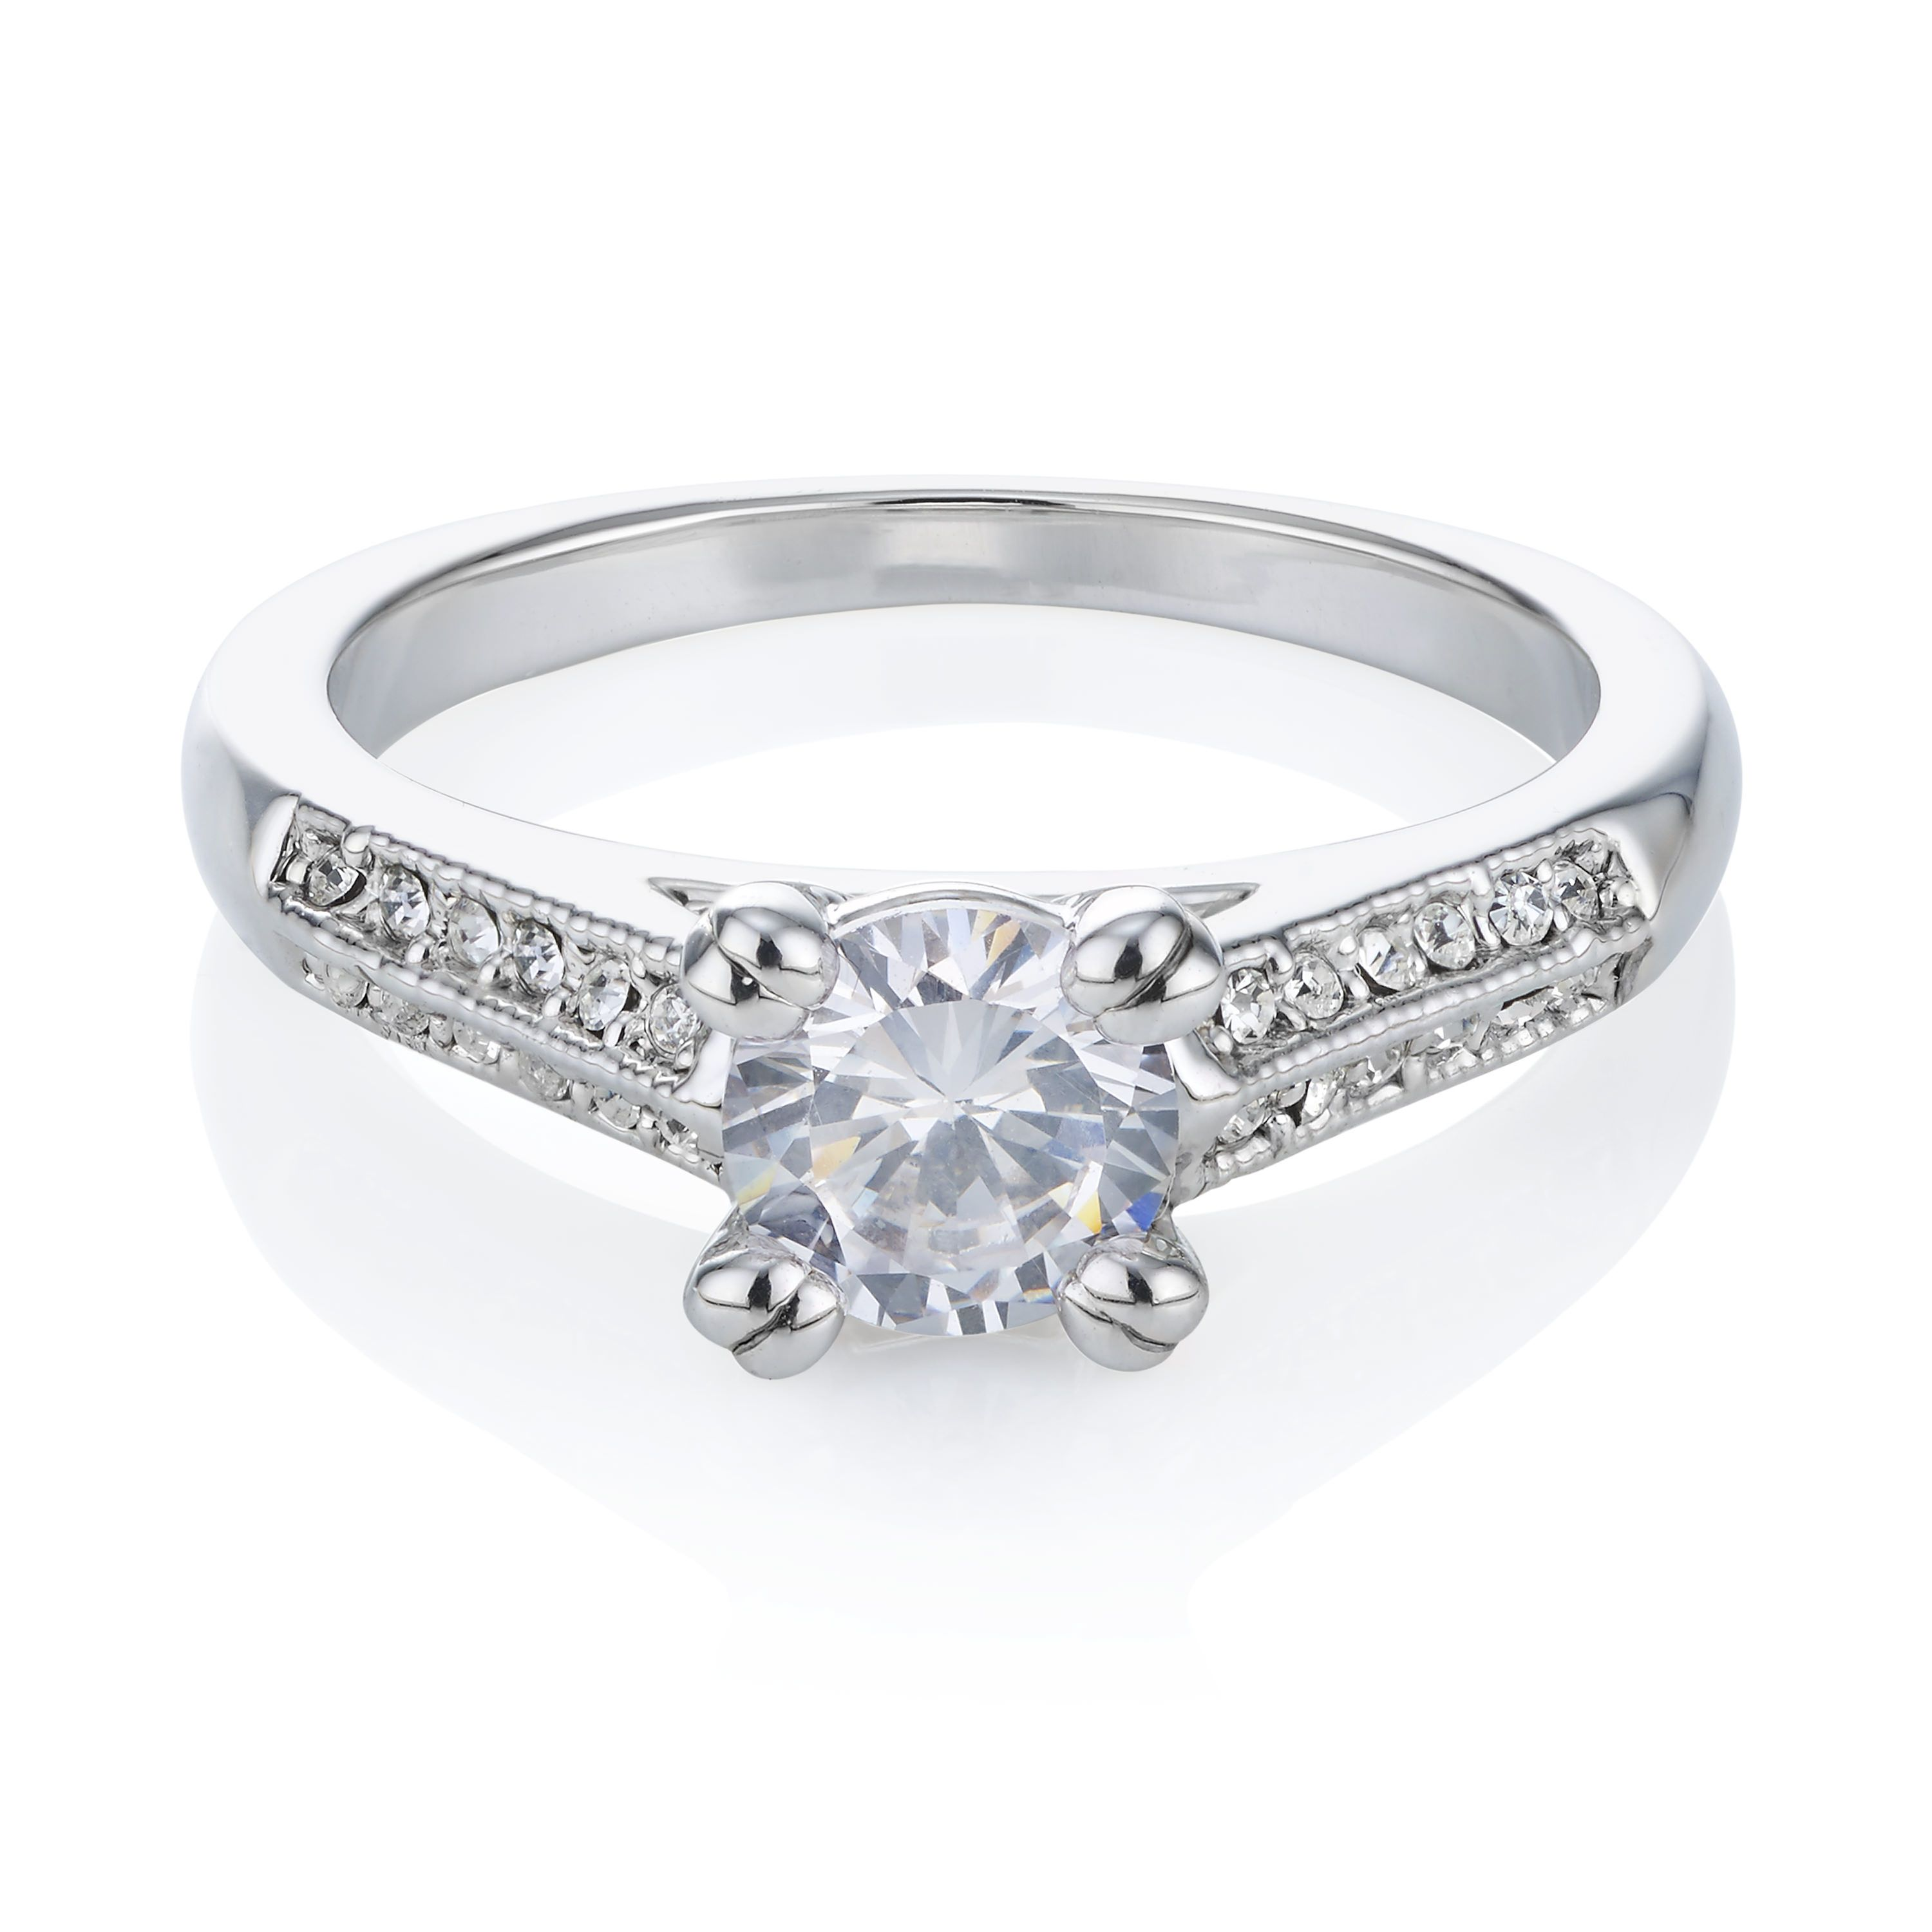 Buckley London Classic Solitaire Pavé Ring